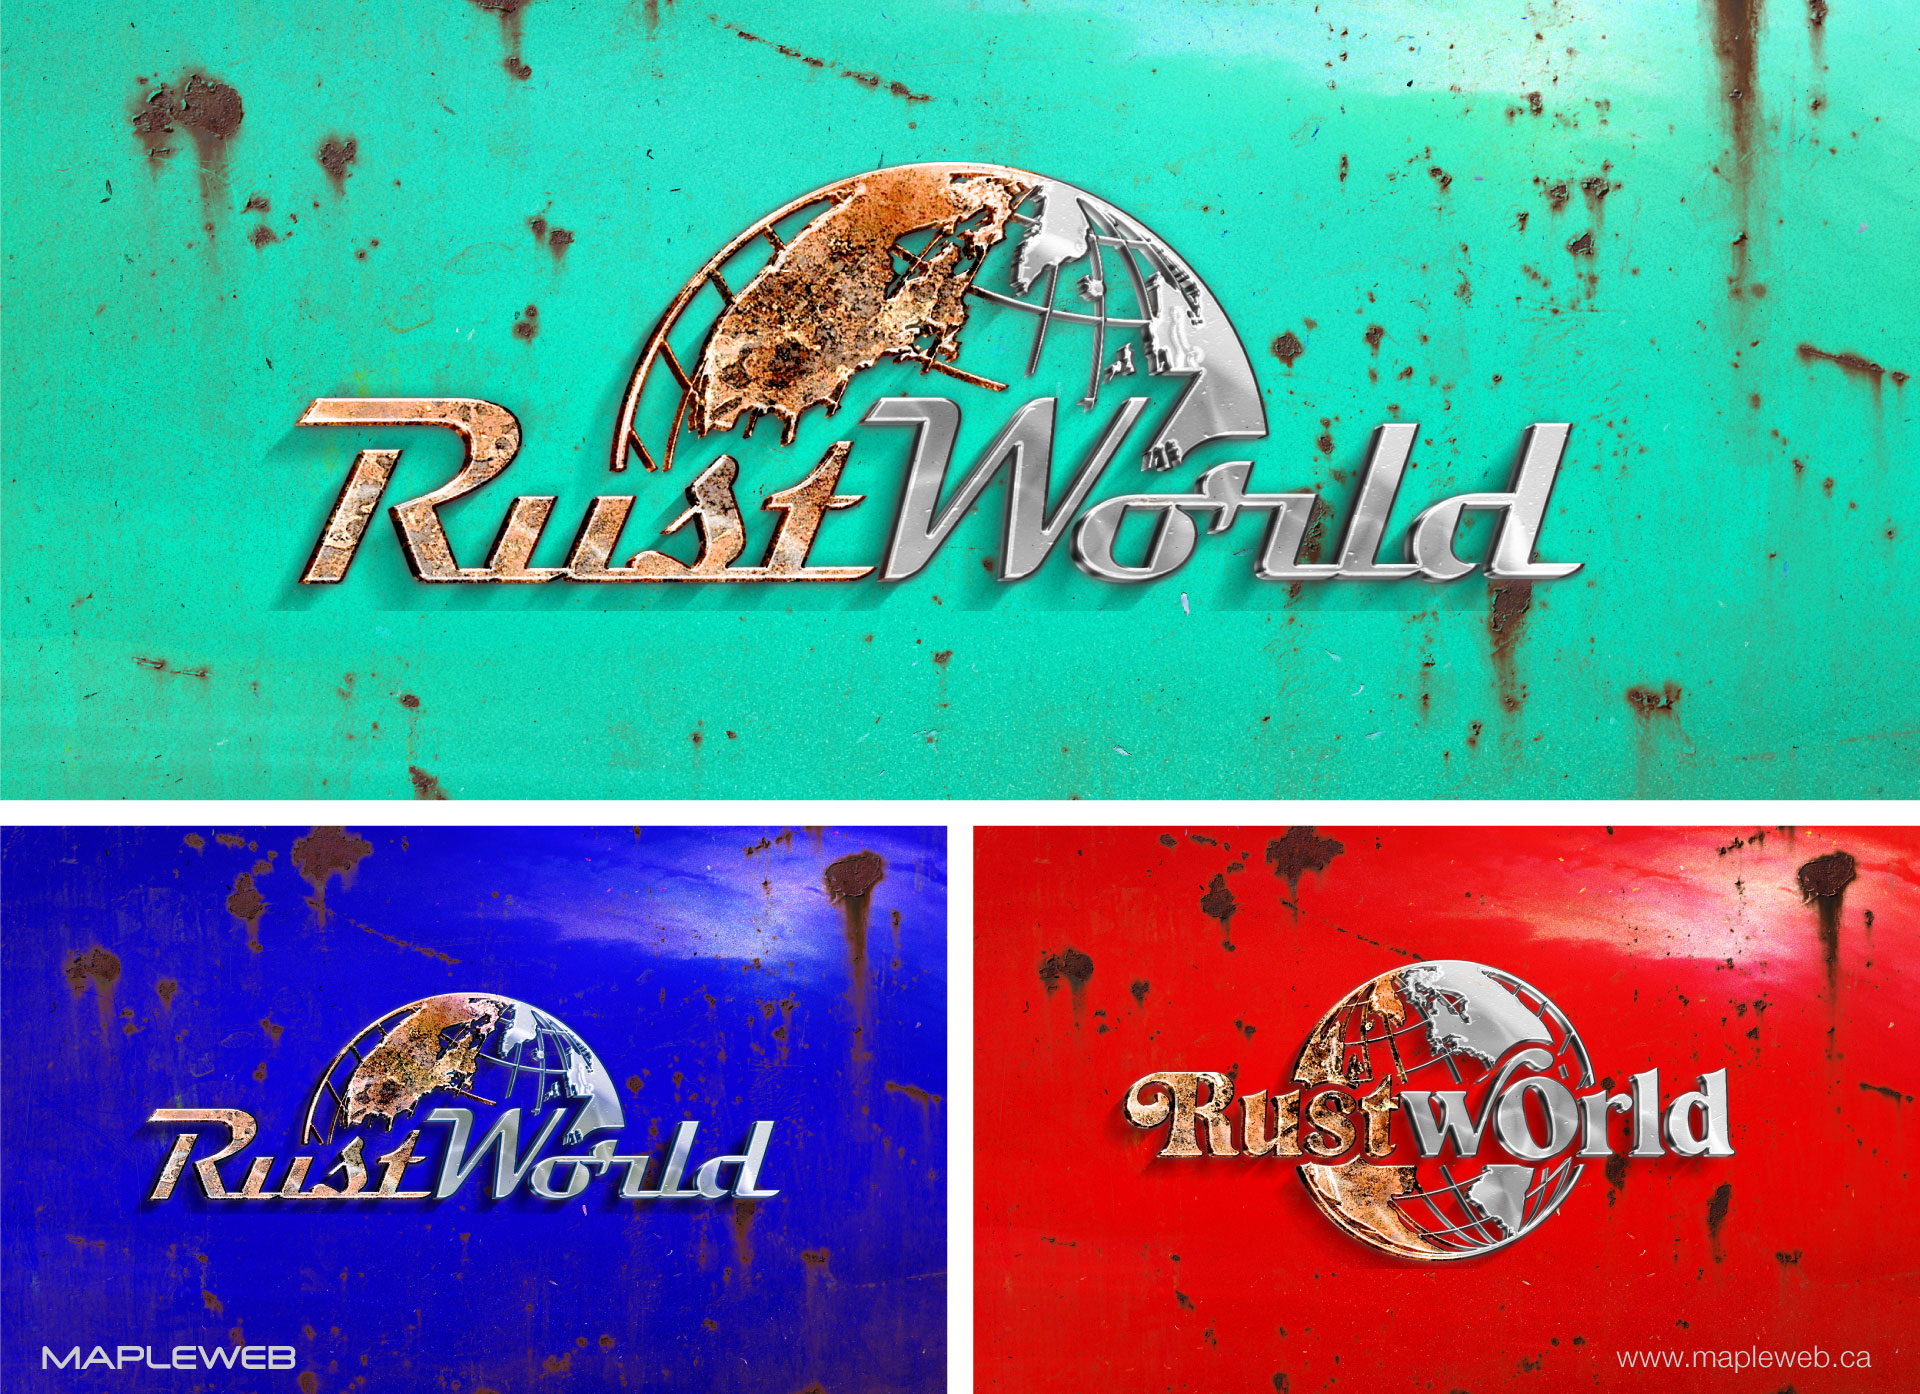 rust-world-brand-logo-design-by-mapleweb-vancouver-canada-turquoise-blue-red-mettalic-effect-mocks